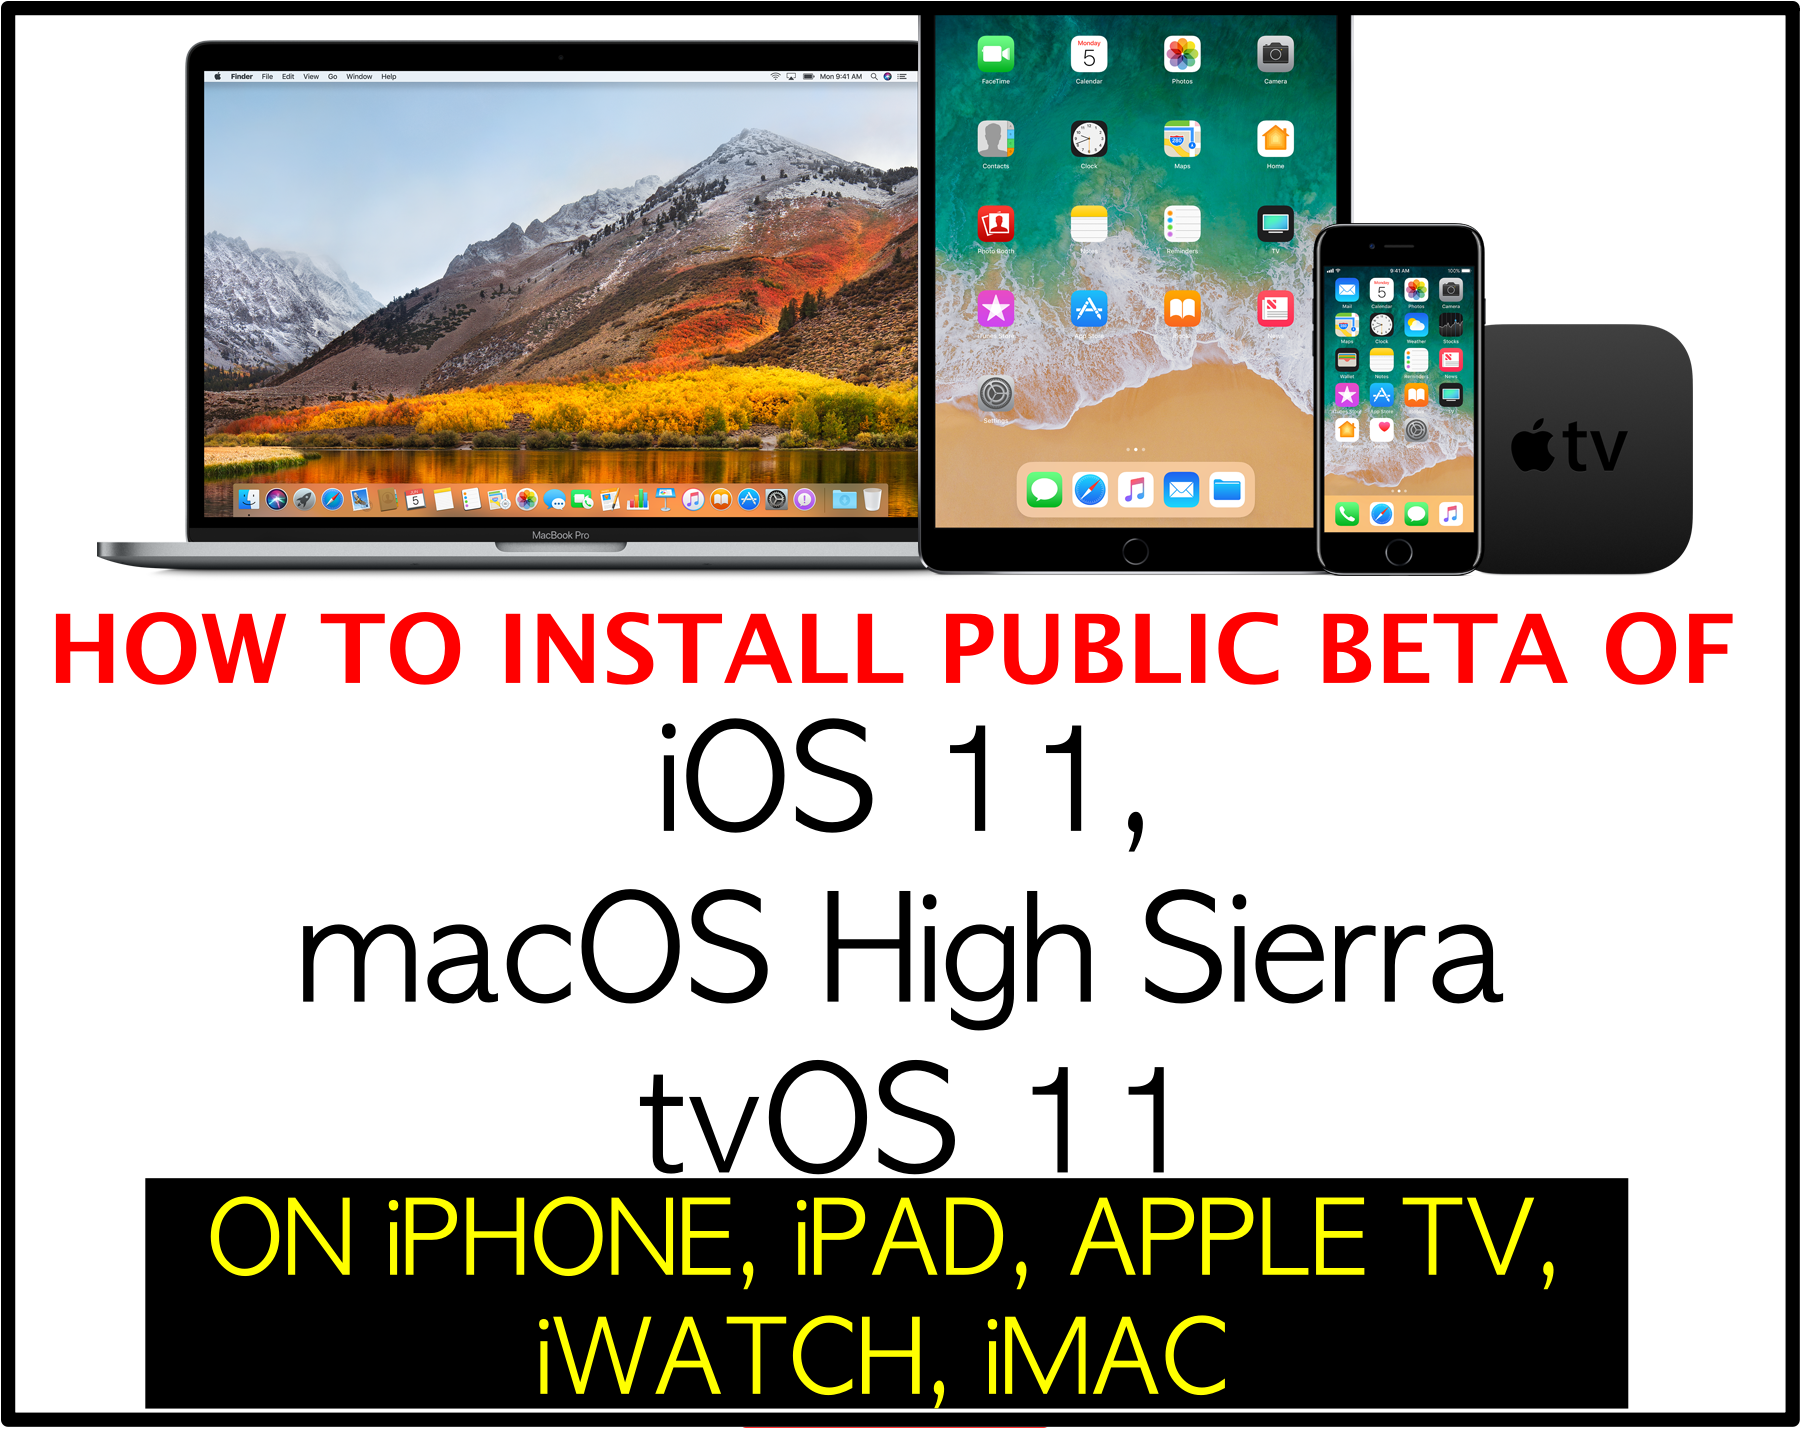 install-ios-11-public-beta-macos-high-sierra-watch-os-4-tv-os-on-iphone-ipad-ipod-mac-iwatch-apple-tv